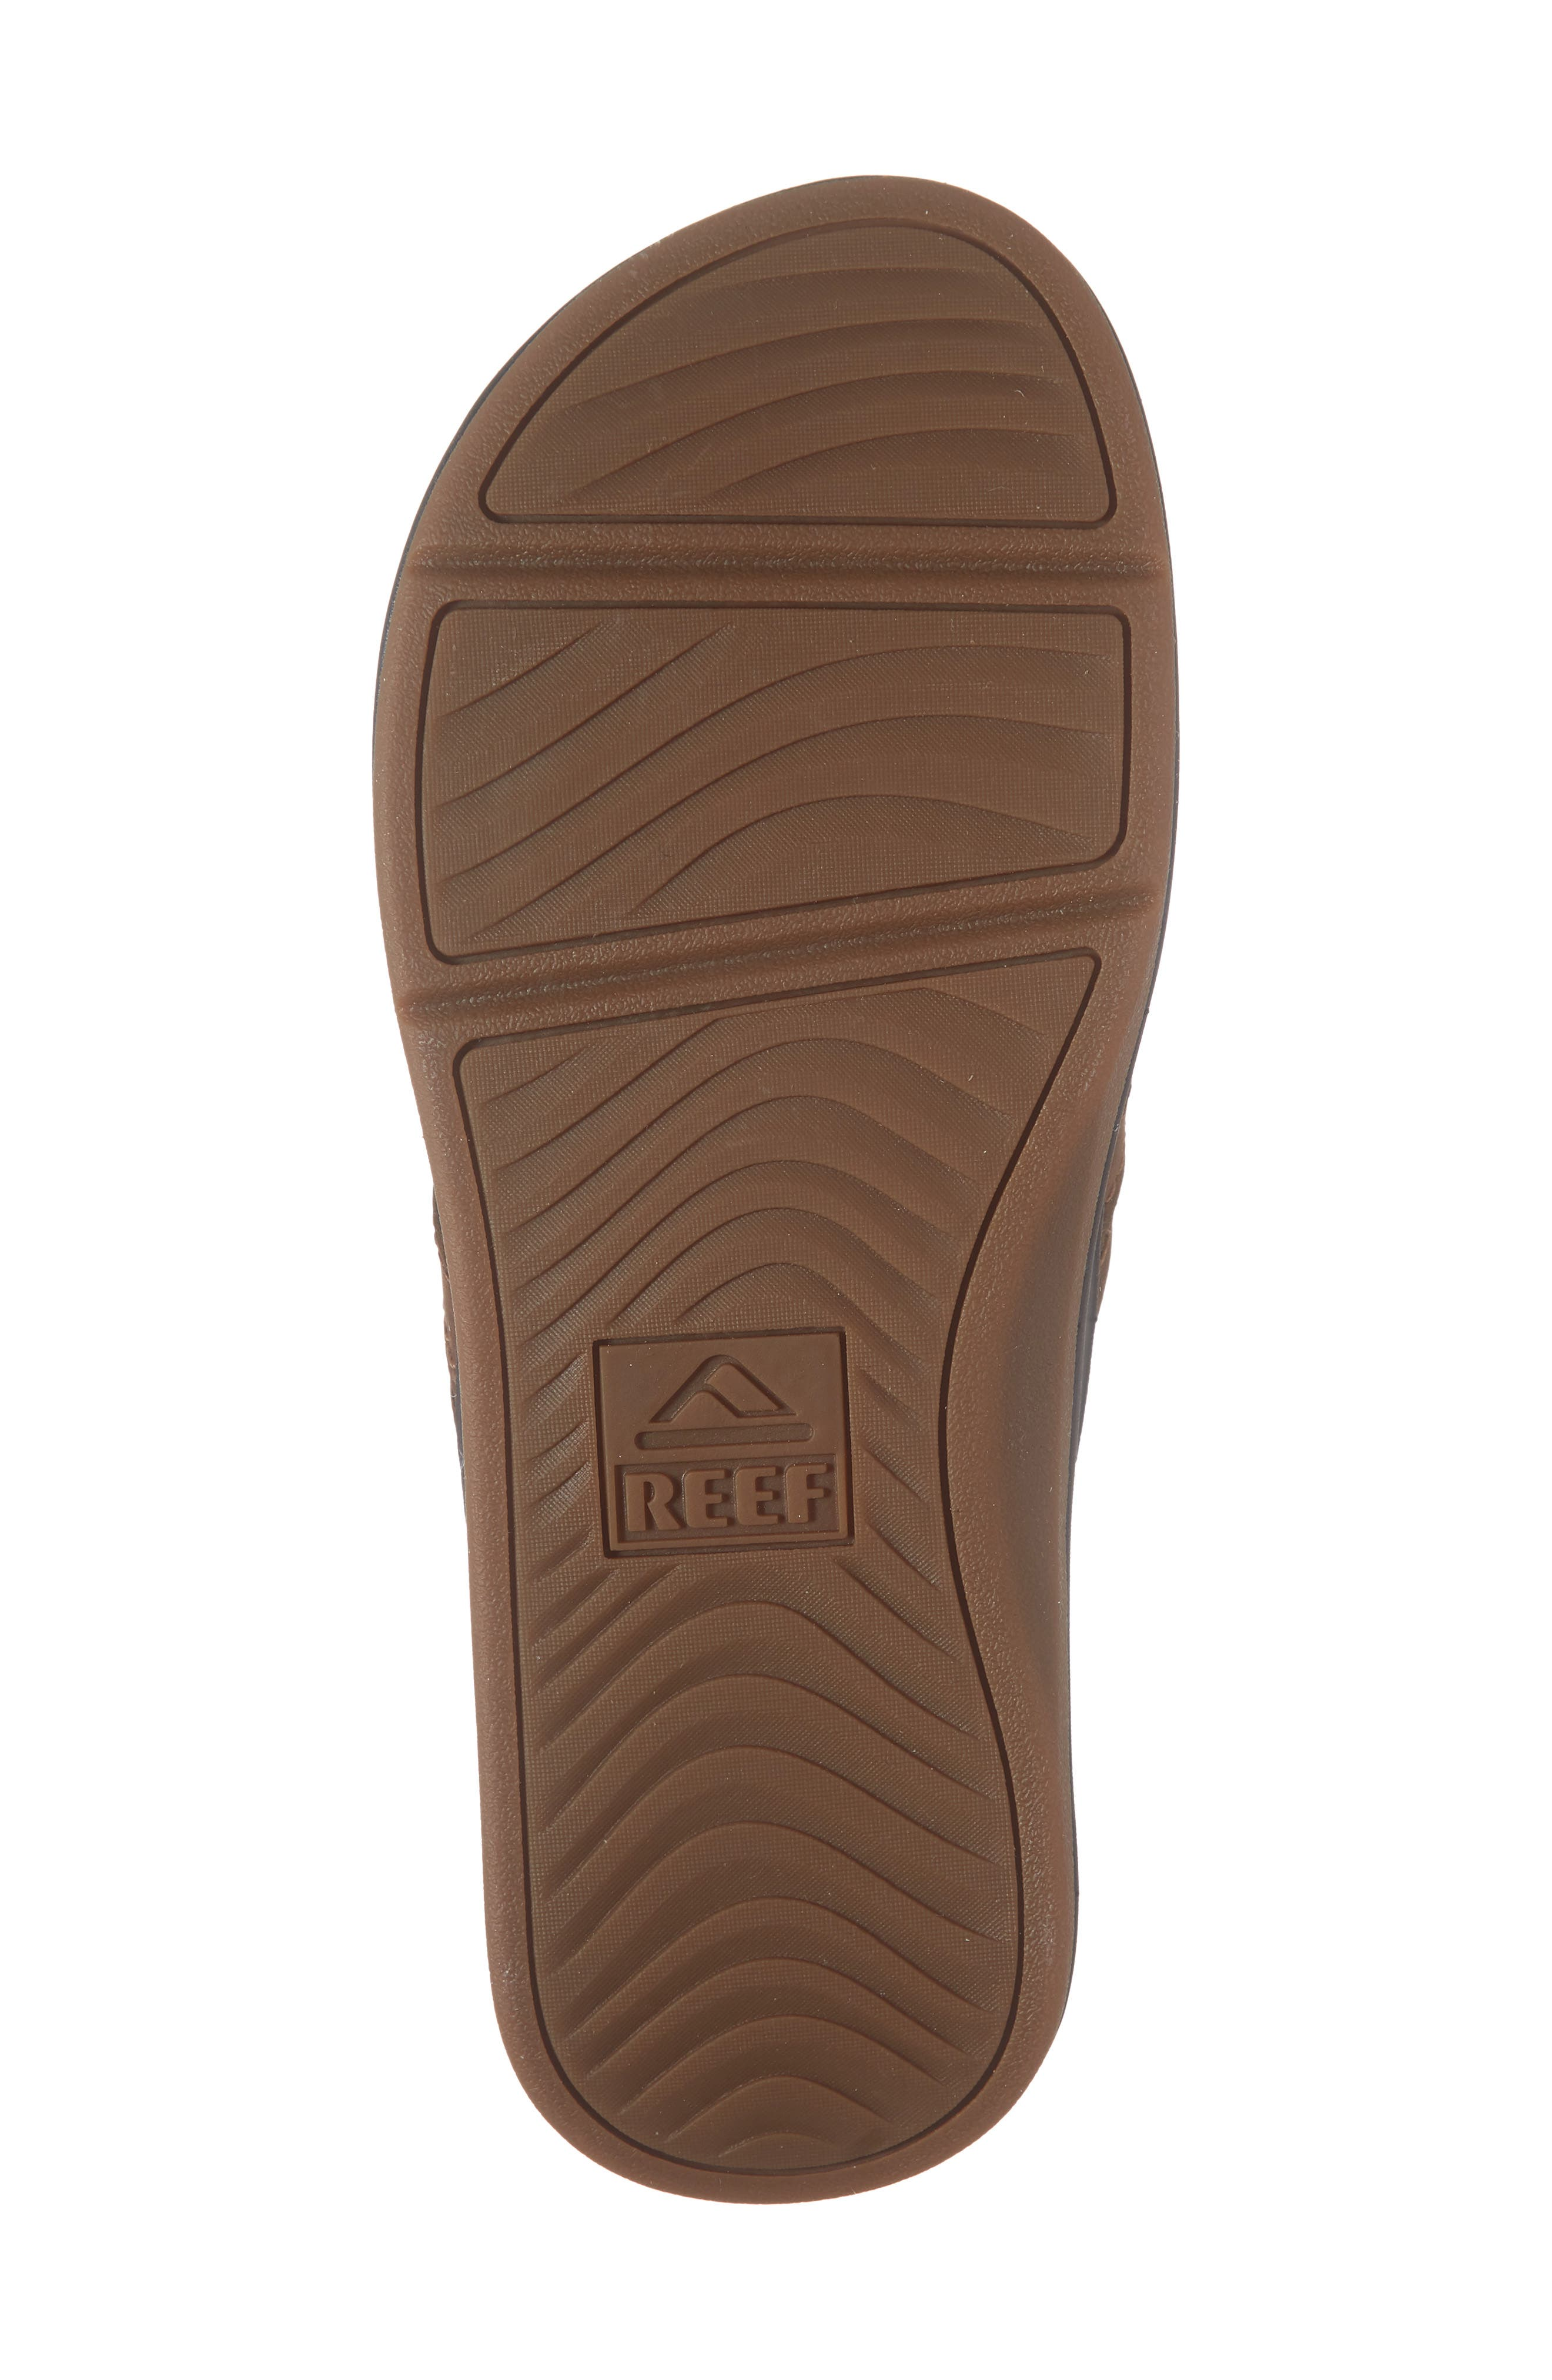 REEF, Ortho Bounce Coast Flip Flop, Alternate thumbnail 6, color, BROWN